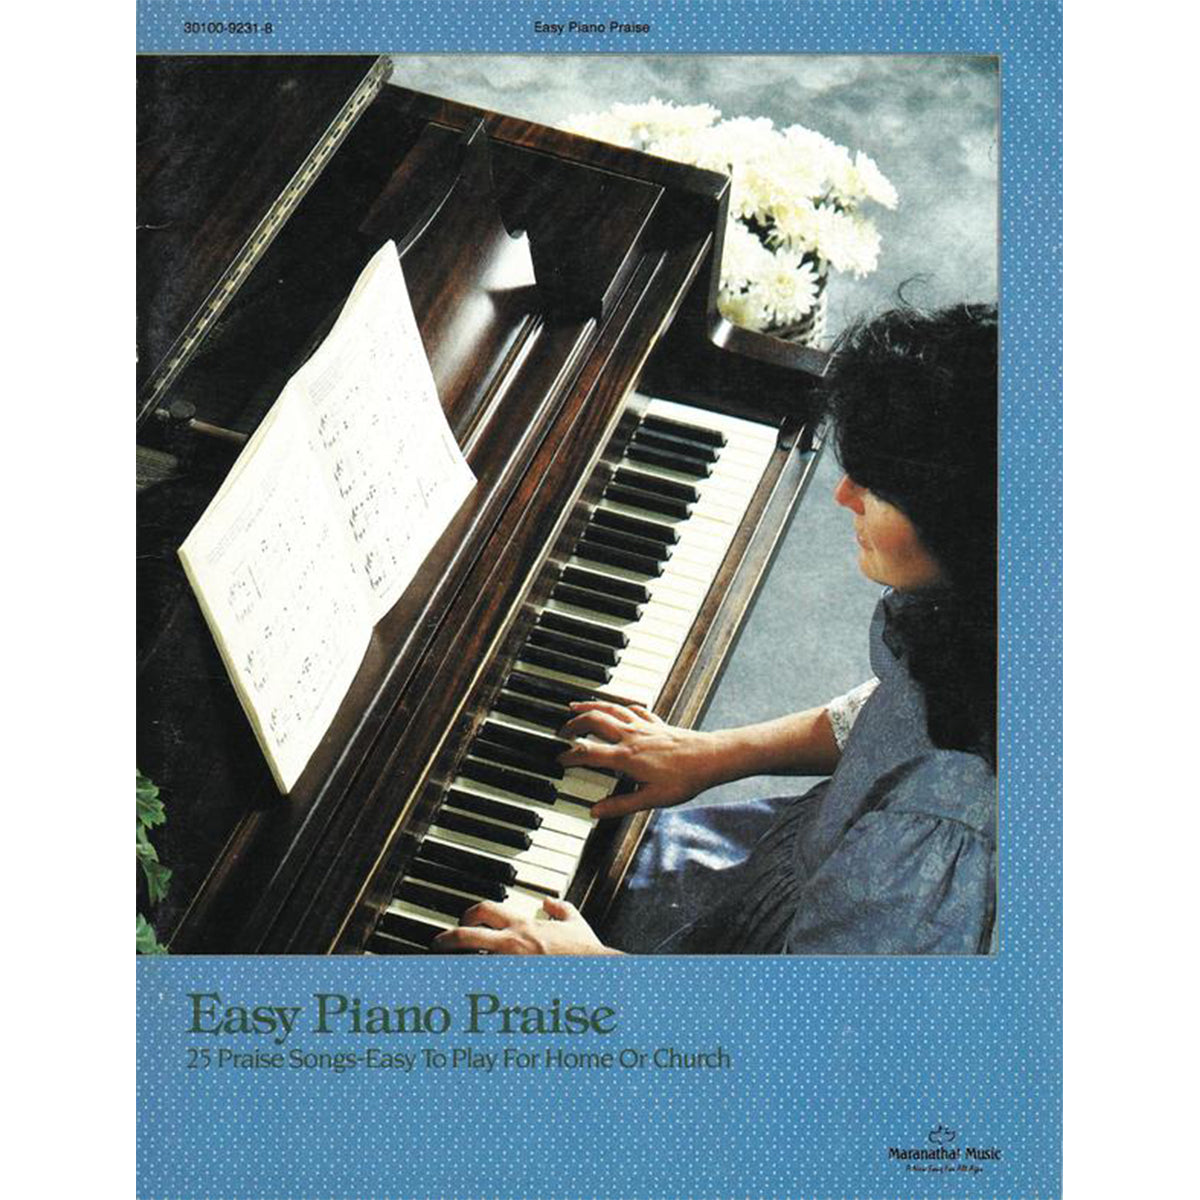 Easy Piano Praise Songbook (Download)